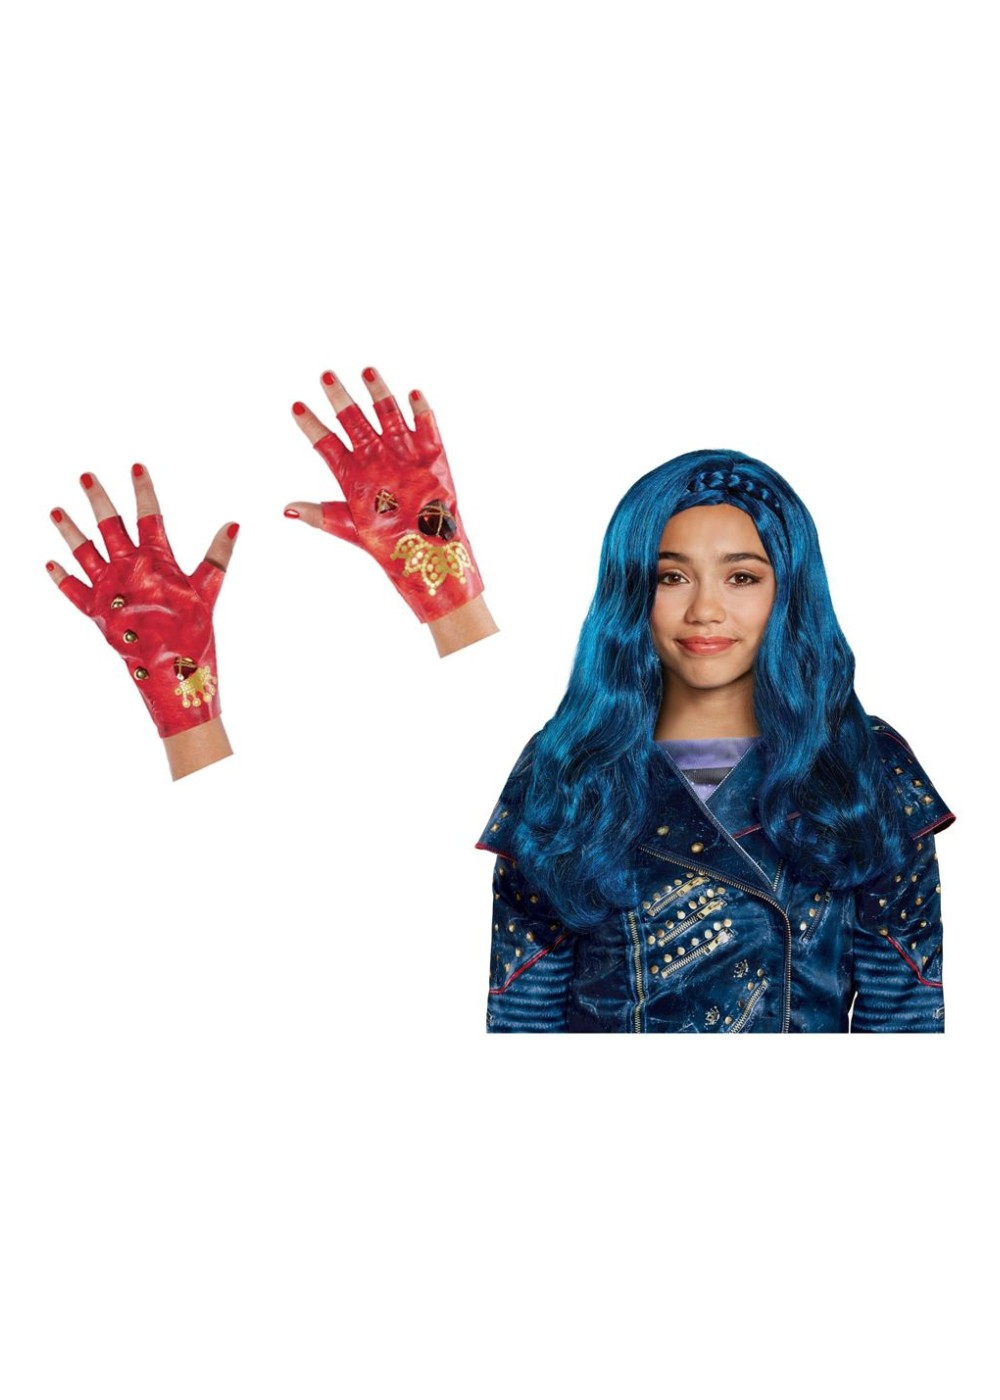 Desecndants 2 Evie Girls Costume Kit - Disney Costumes